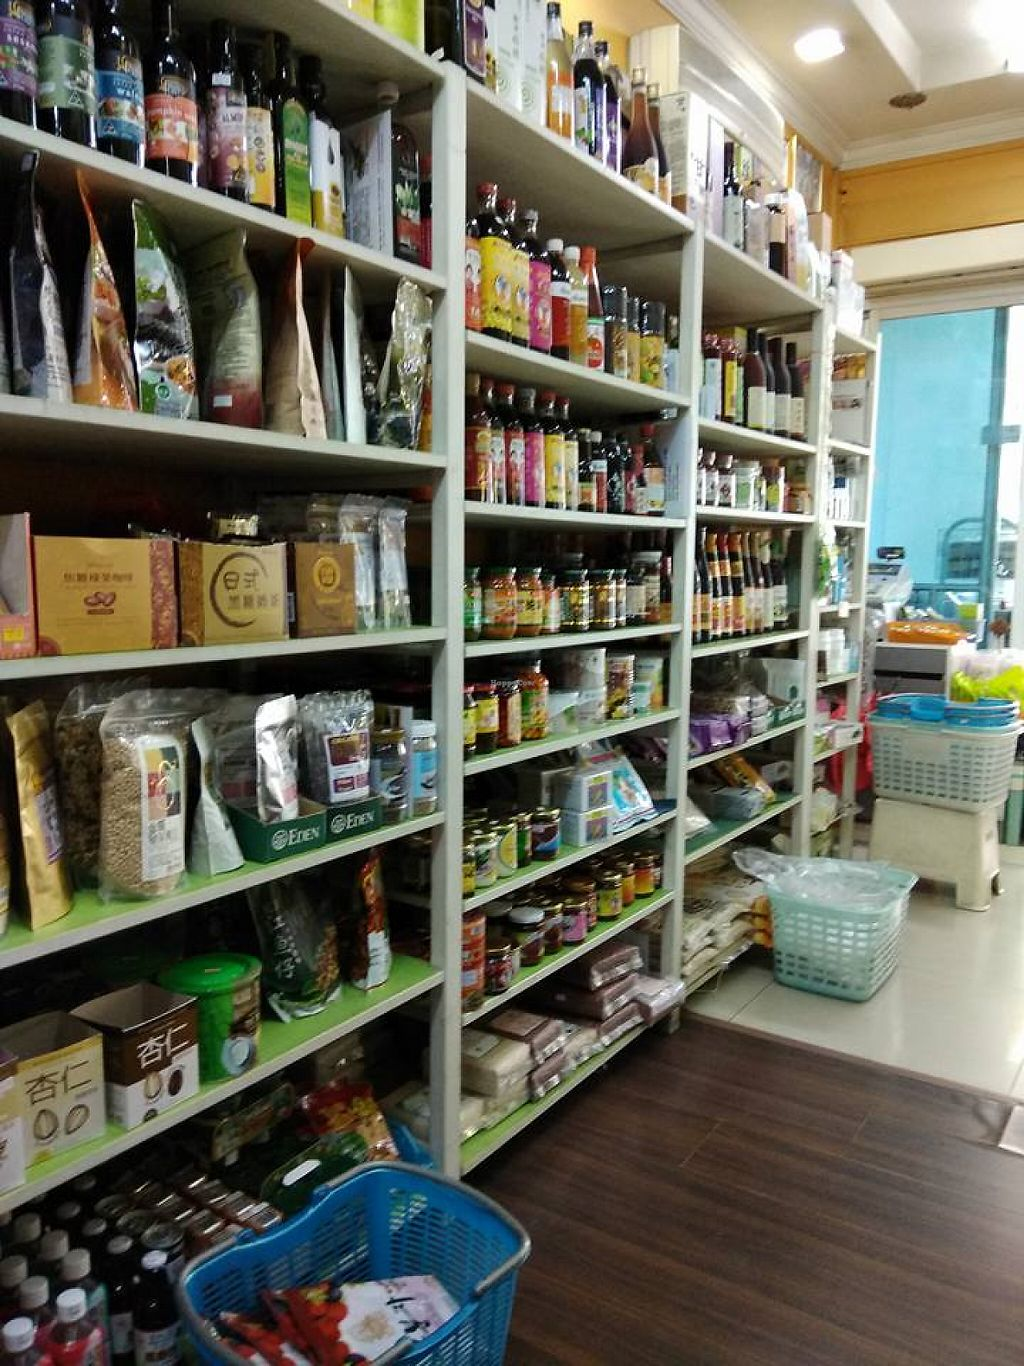 """Photo of Ananda Home - Yishun  by <a href=""""/members/profile/JimmySeah"""">JimmySeah</a> <br/>grocery section  <br/> May 18, 2017  - <a href='/contact/abuse/image/92289/259676'>Report</a>"""